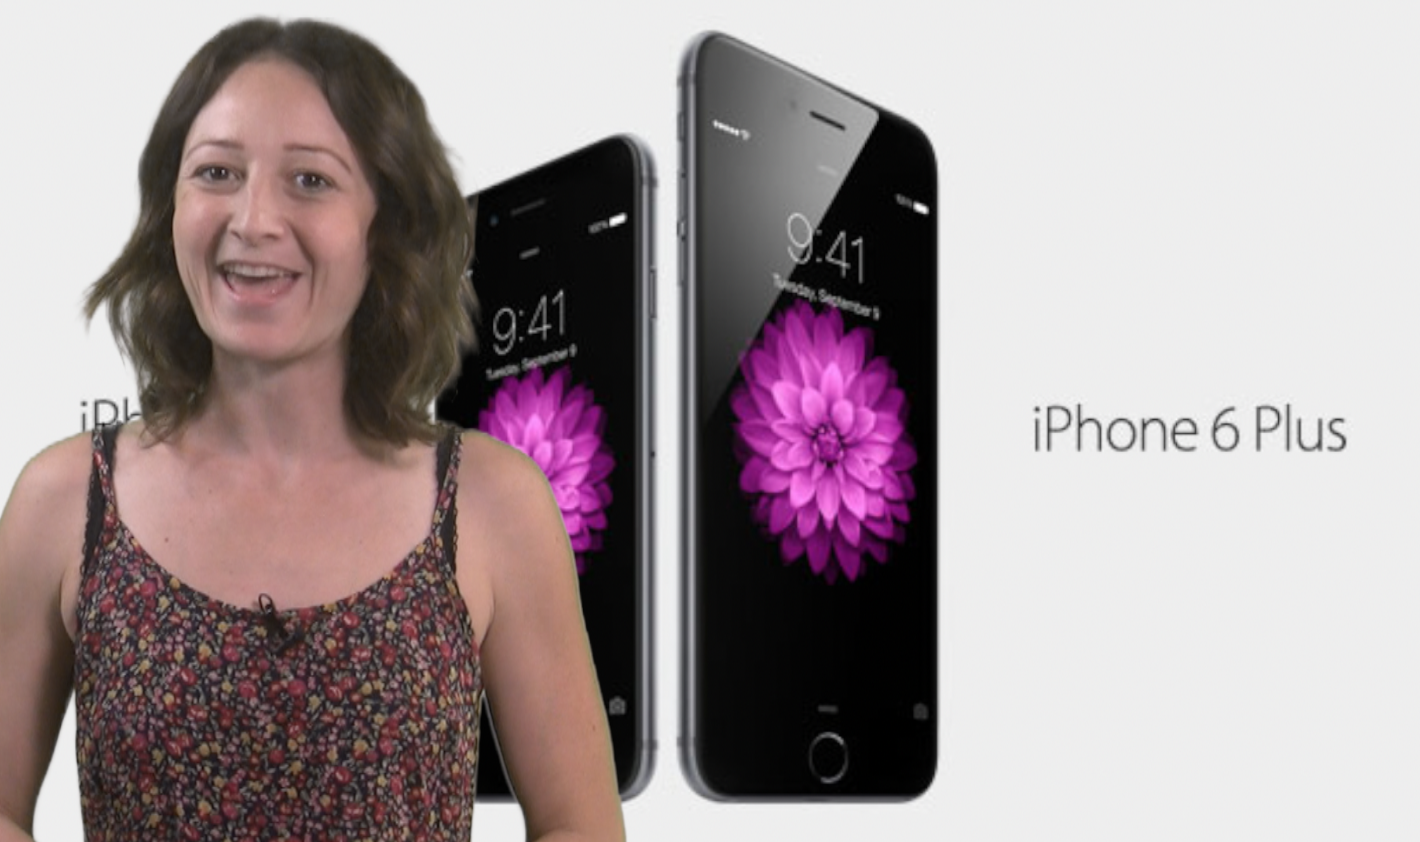 AppAdvice Daily: Apple special event 5 minute video roundup